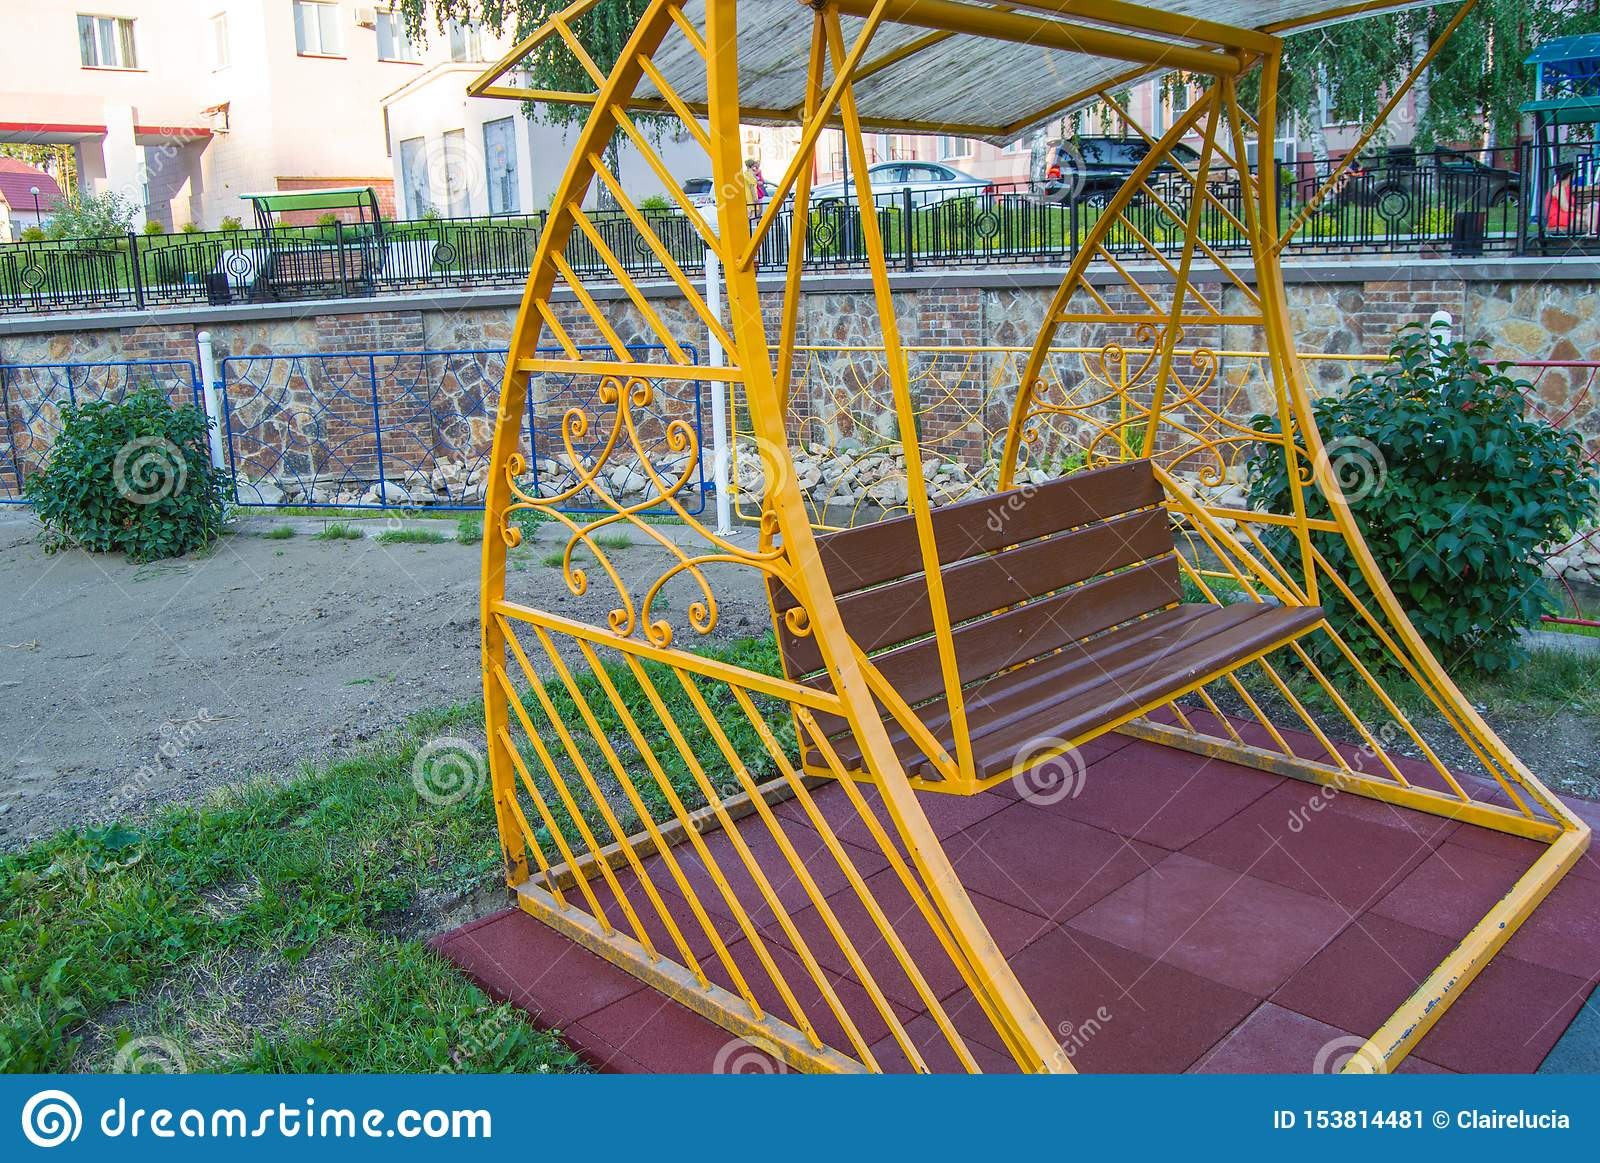 City Park in summer, empty wooden swing with yellow decorative metal frame, outdoor leisure furniture